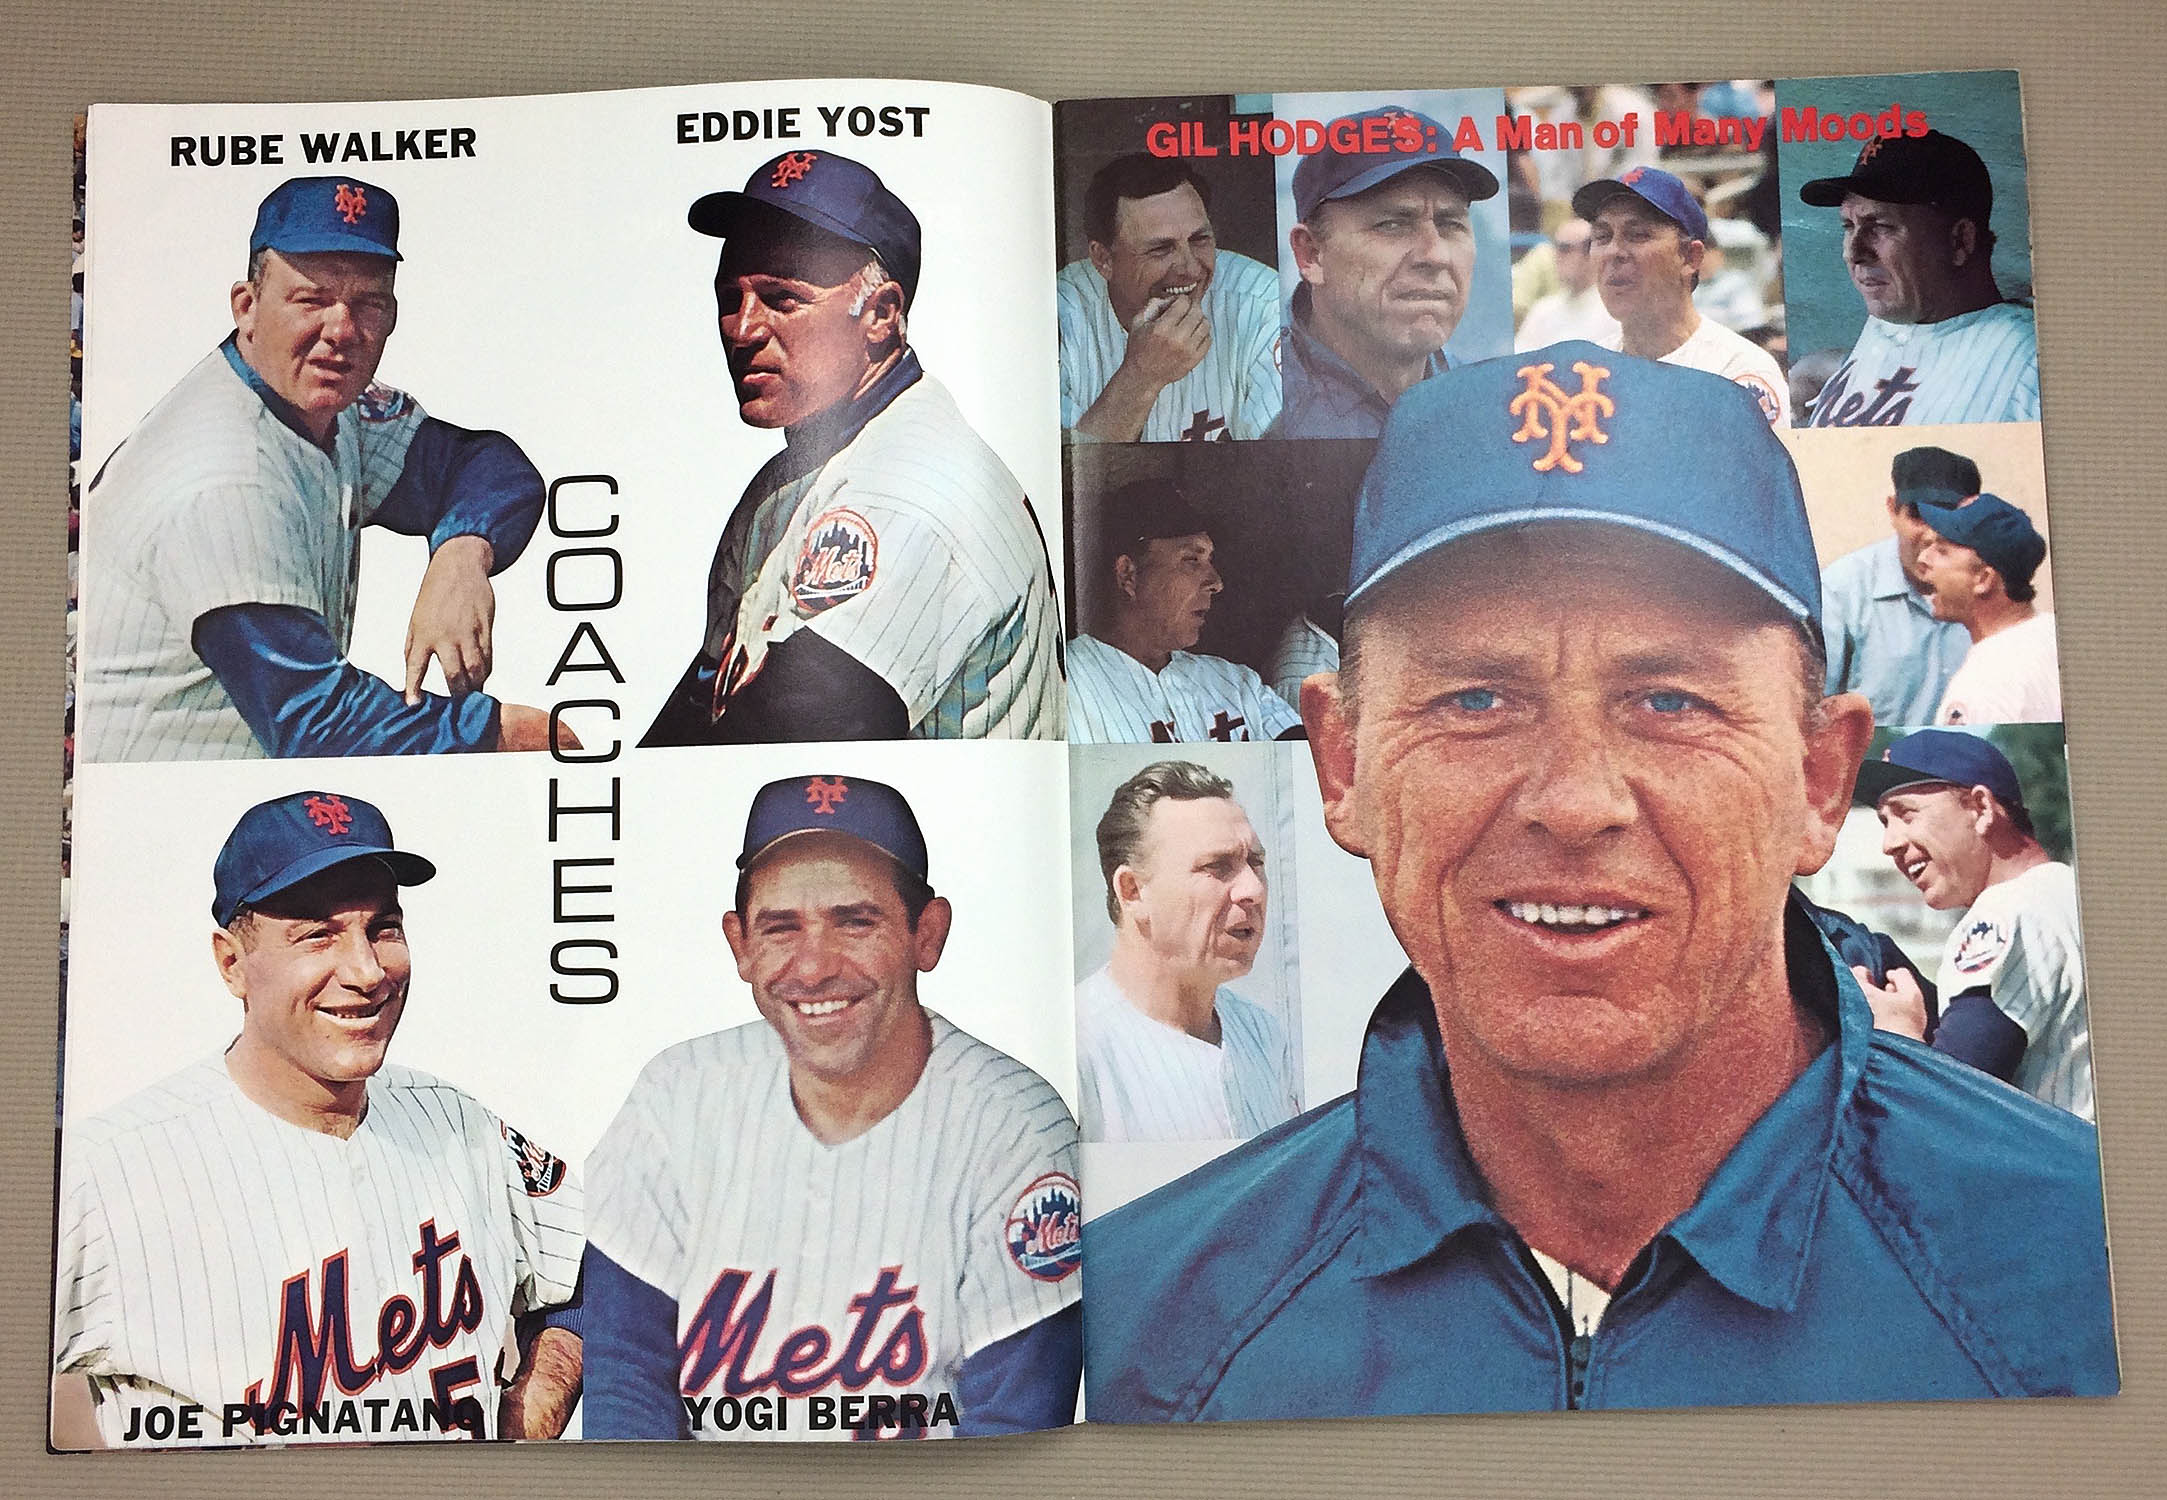 Gil Hodges A Man of Many Moods